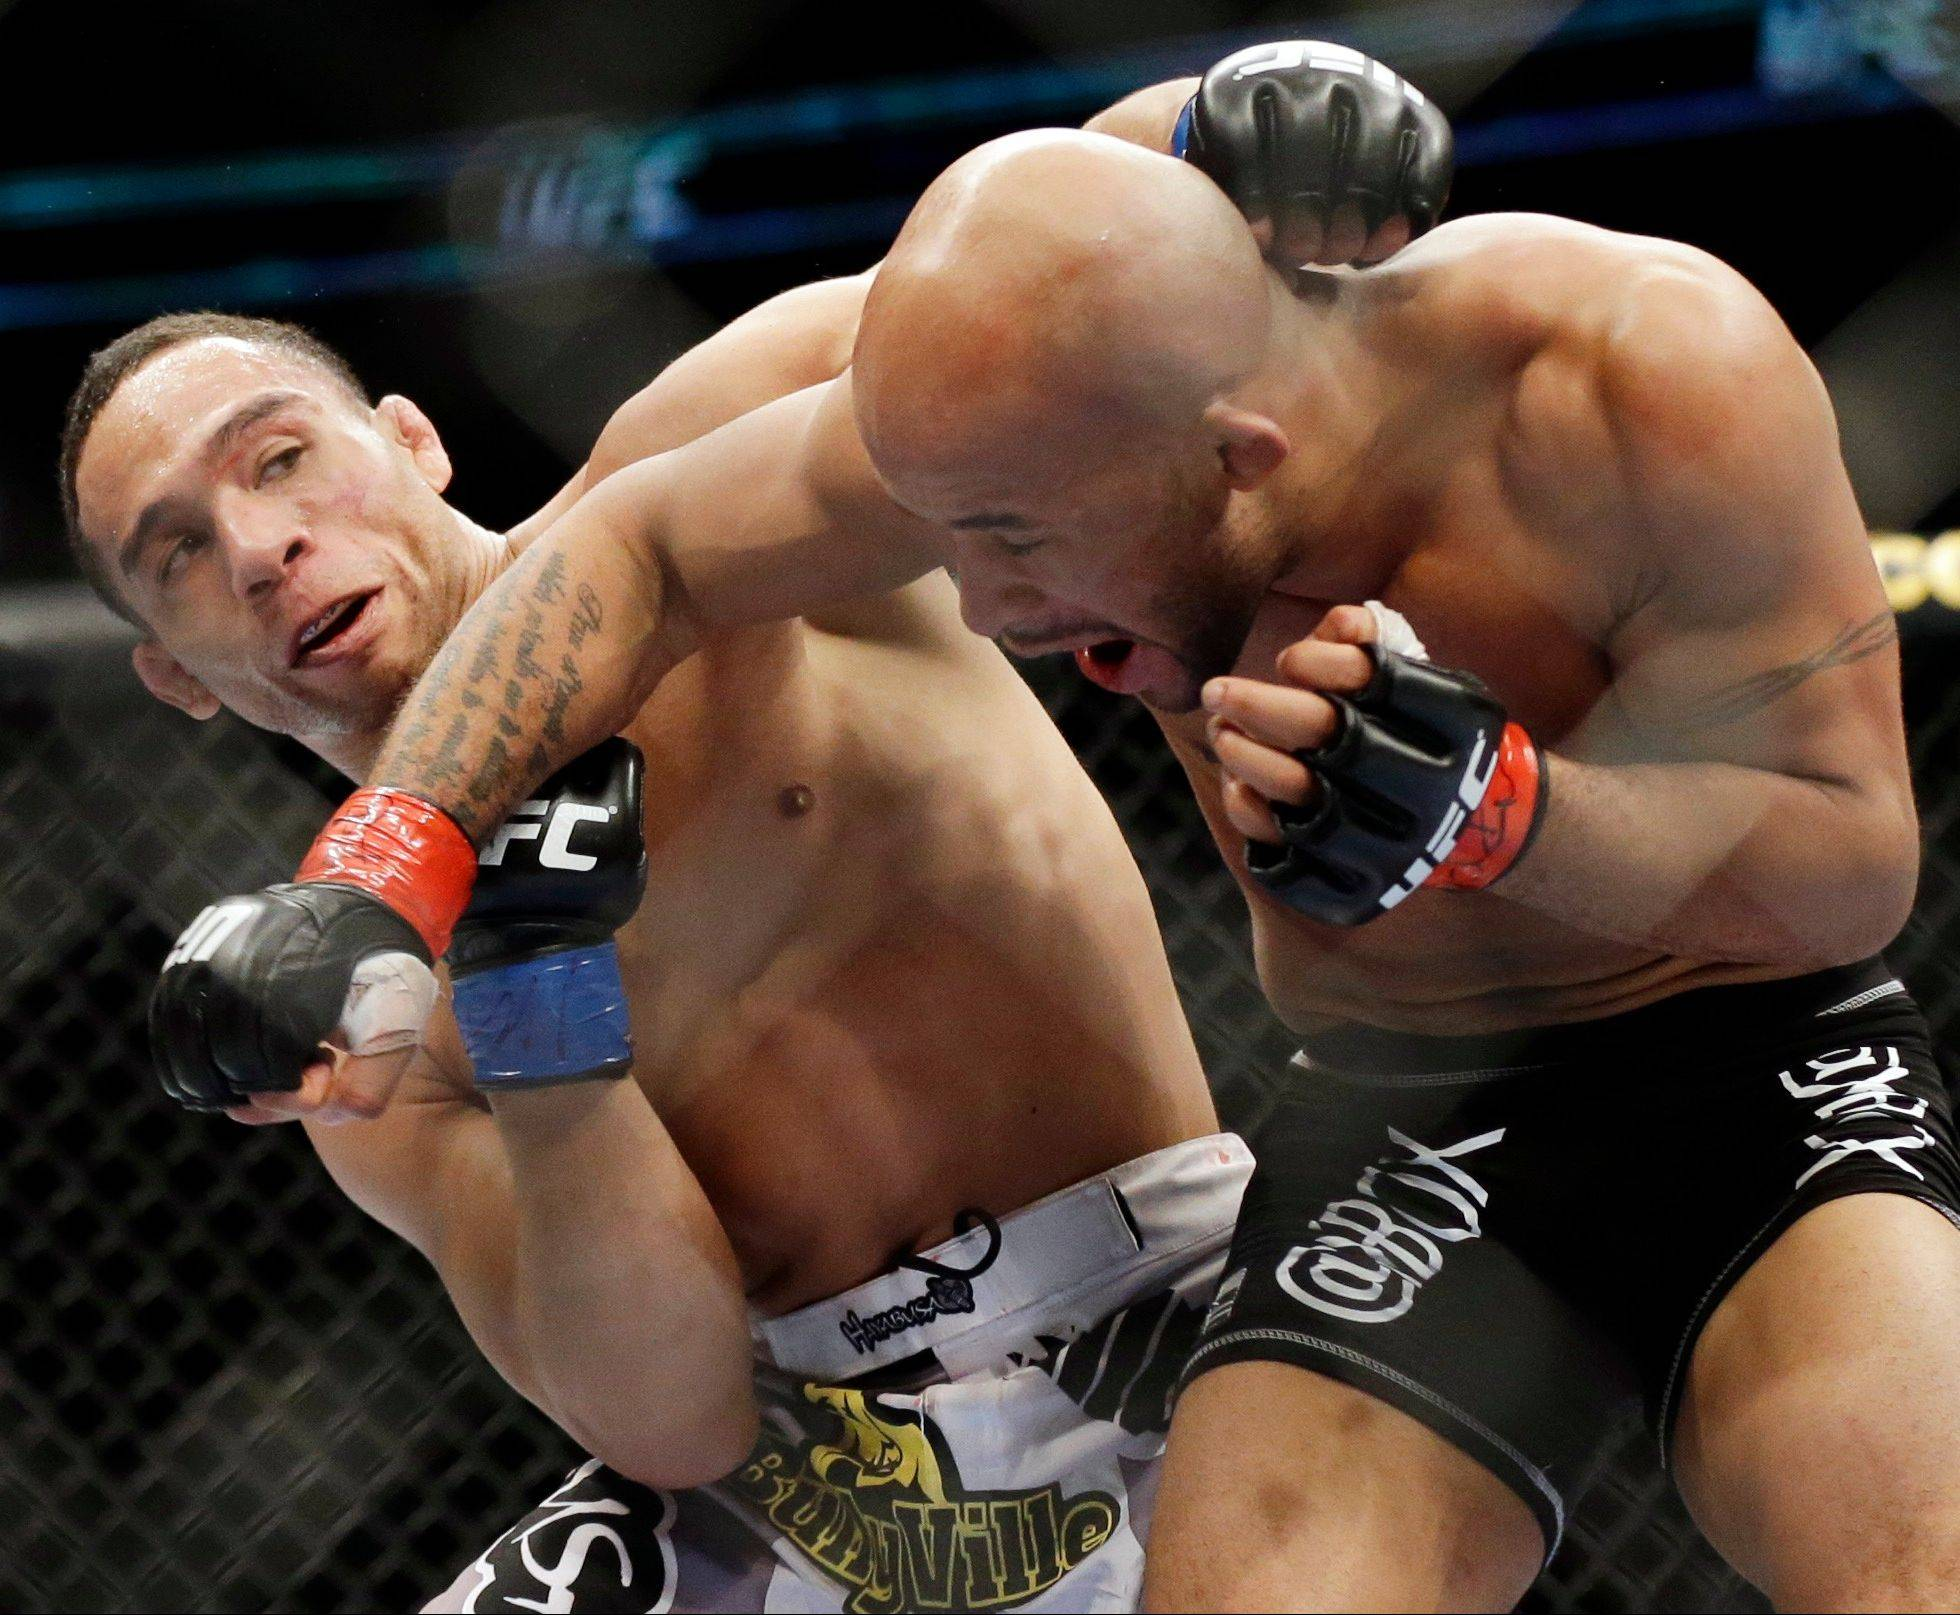 The Naperville City Council is likely to place limits on mixed martial arts fights in town by prohibiting the sale of alcohol, requiring all spectators younger than 18 to be with a parent or guardian, mandating the events take place during the day and requiring the fights to be licensed as special events.